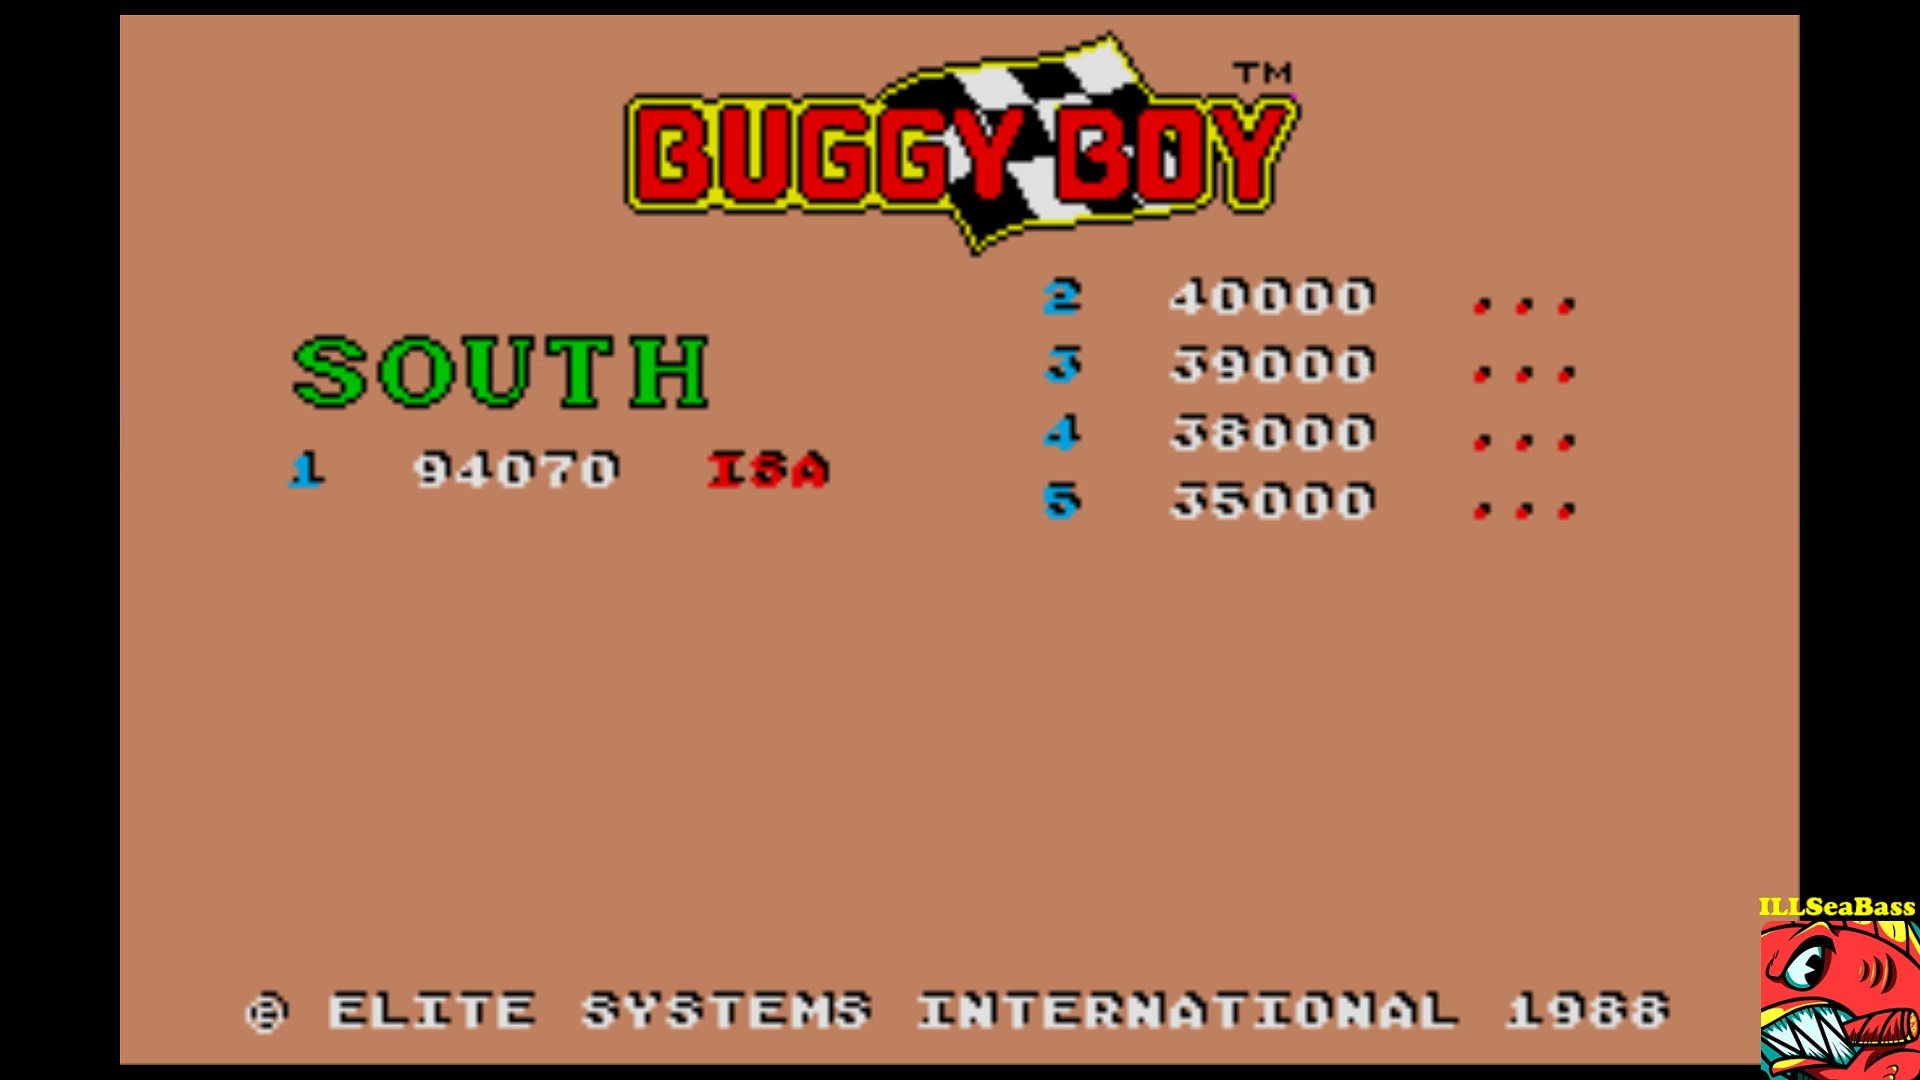 ILLSeaBass: Buggy Boy [South] (Atari ST Emulated) 94,070 points on 2017-10-23 21:12:06